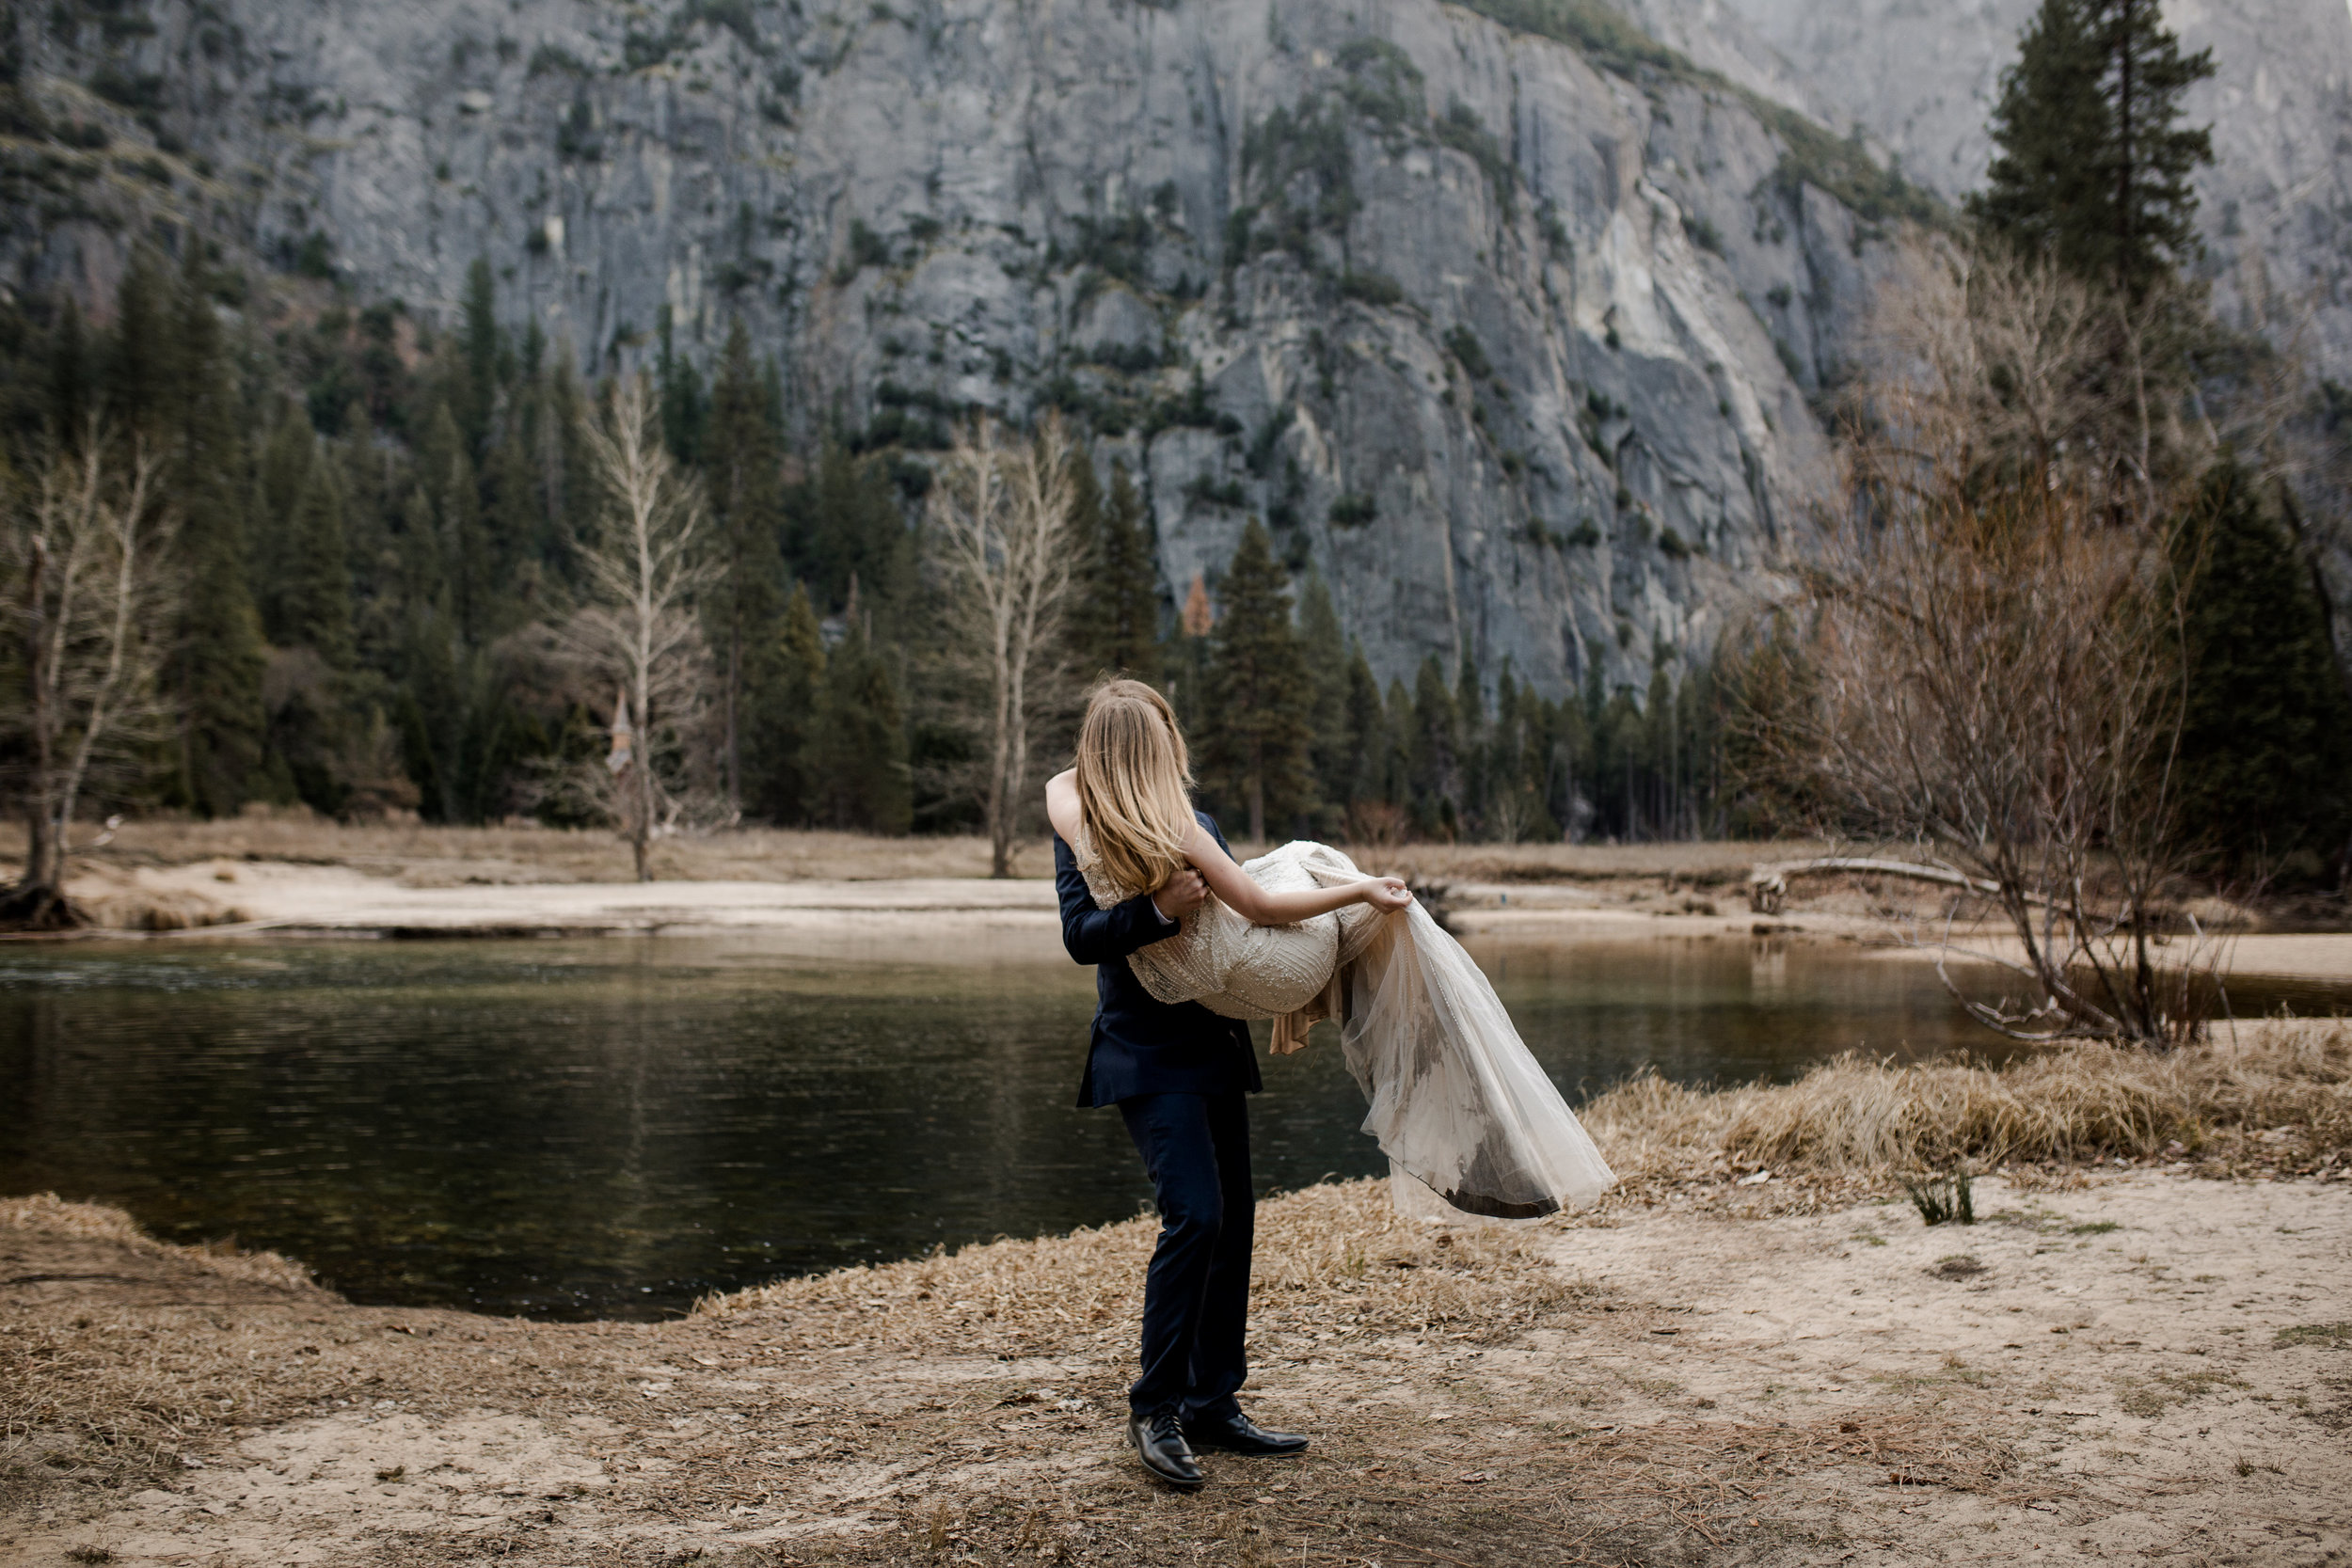 nicole-daacke-photography-yousemite-national-park-elopement-photographer-winter-cloud-moody-elope-inspiration-yosemite-valley-tunnel-view-winter-cloud-fog-weather-wedding-photos-40.jpg